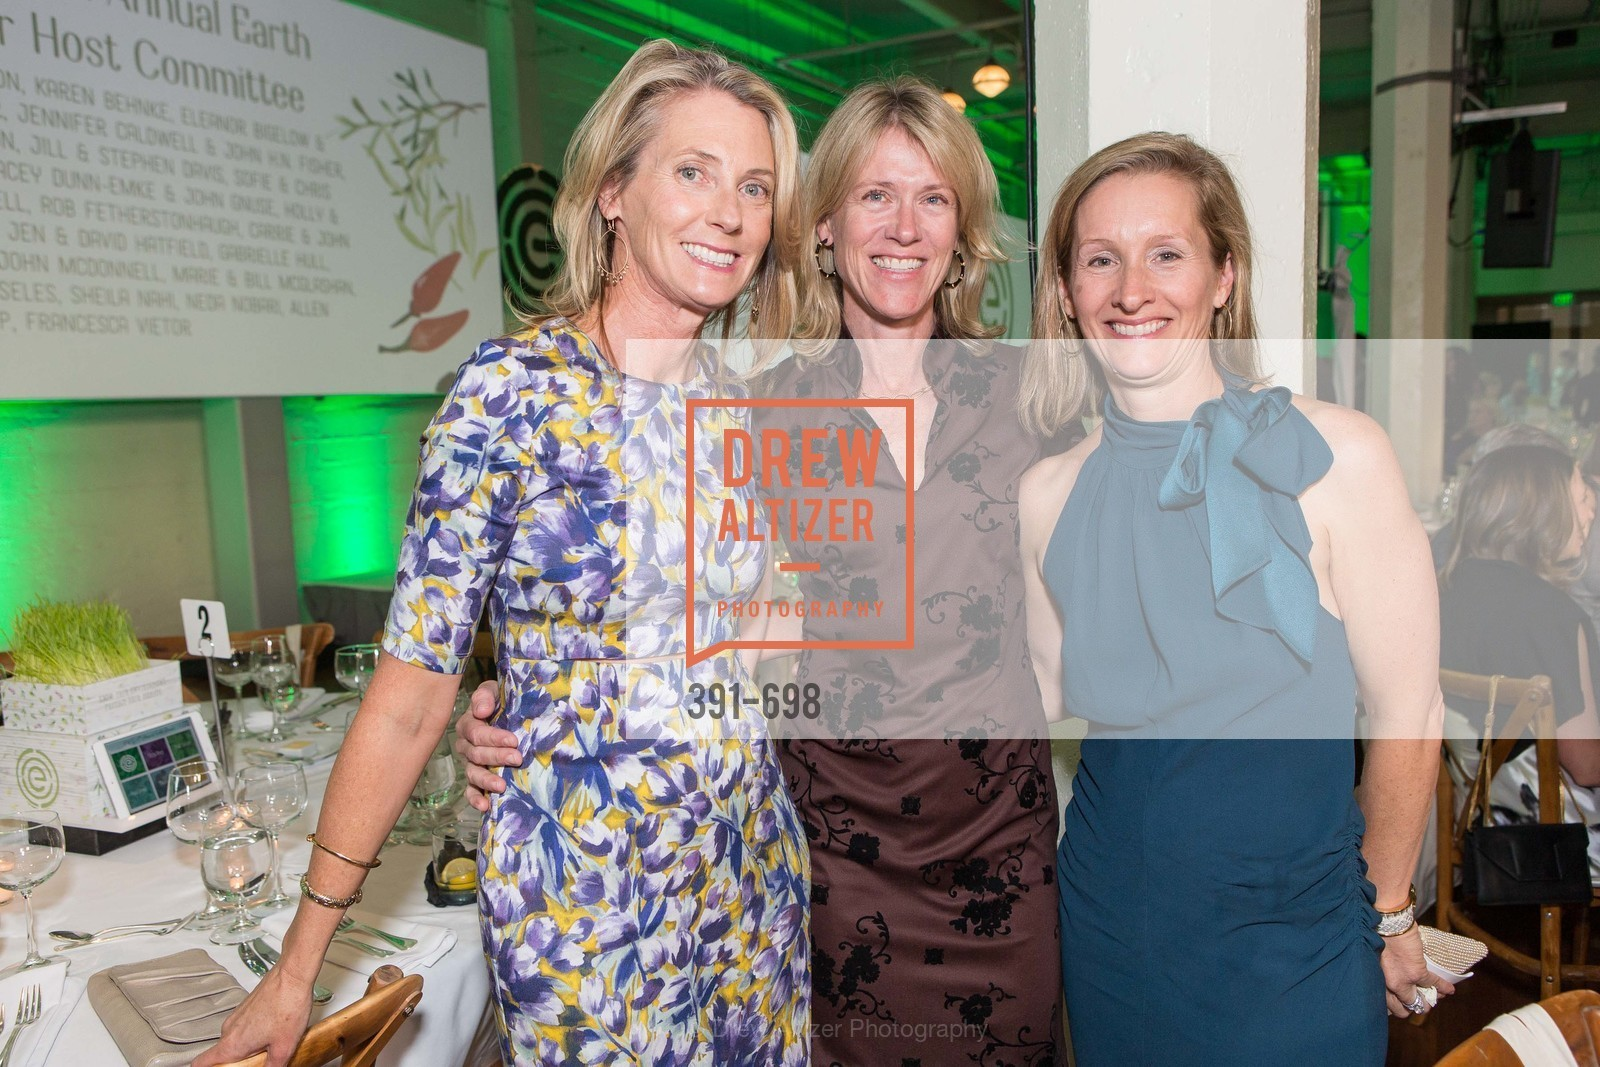 Jennifer Caldwell, Evie Davis, Carol McDonnell, EWG's 6th Annual Earth Dinner, US, May 6th, 2015,Drew Altizer, Drew Altizer Photography, full-service agency, private events, San Francisco photographer, photographer california